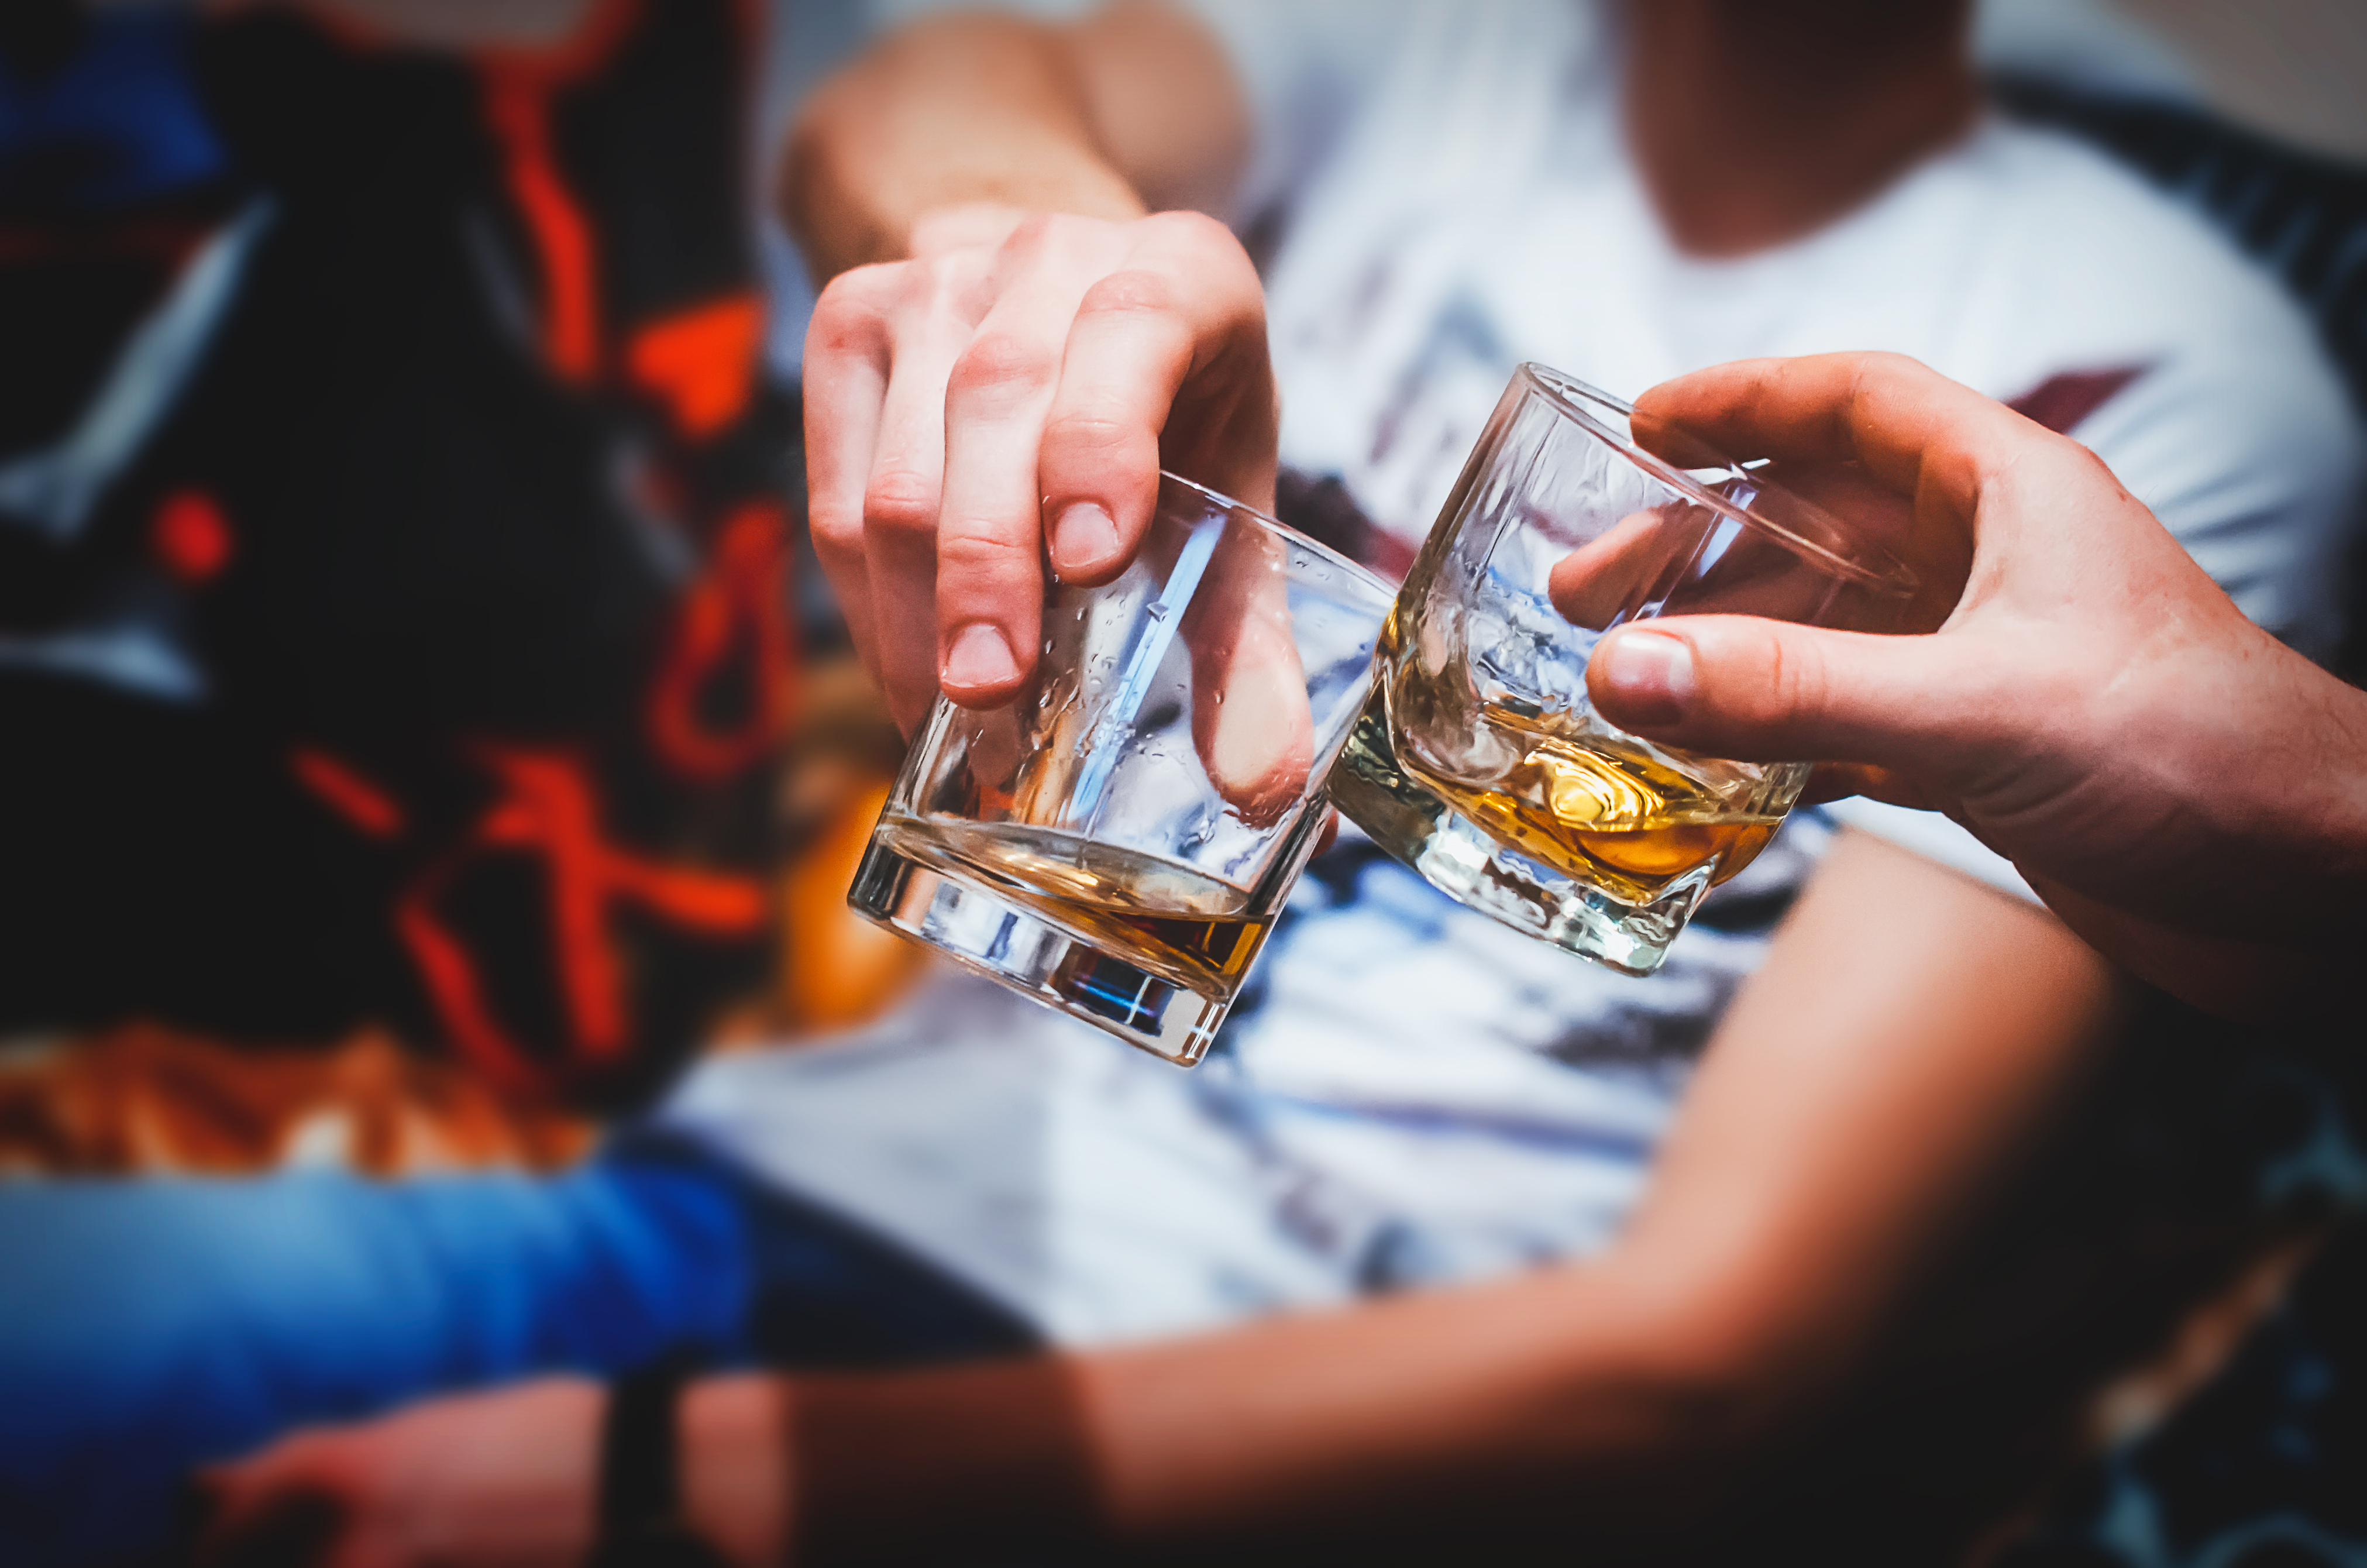 an image of people drinking for the blog dangers of binge drinking